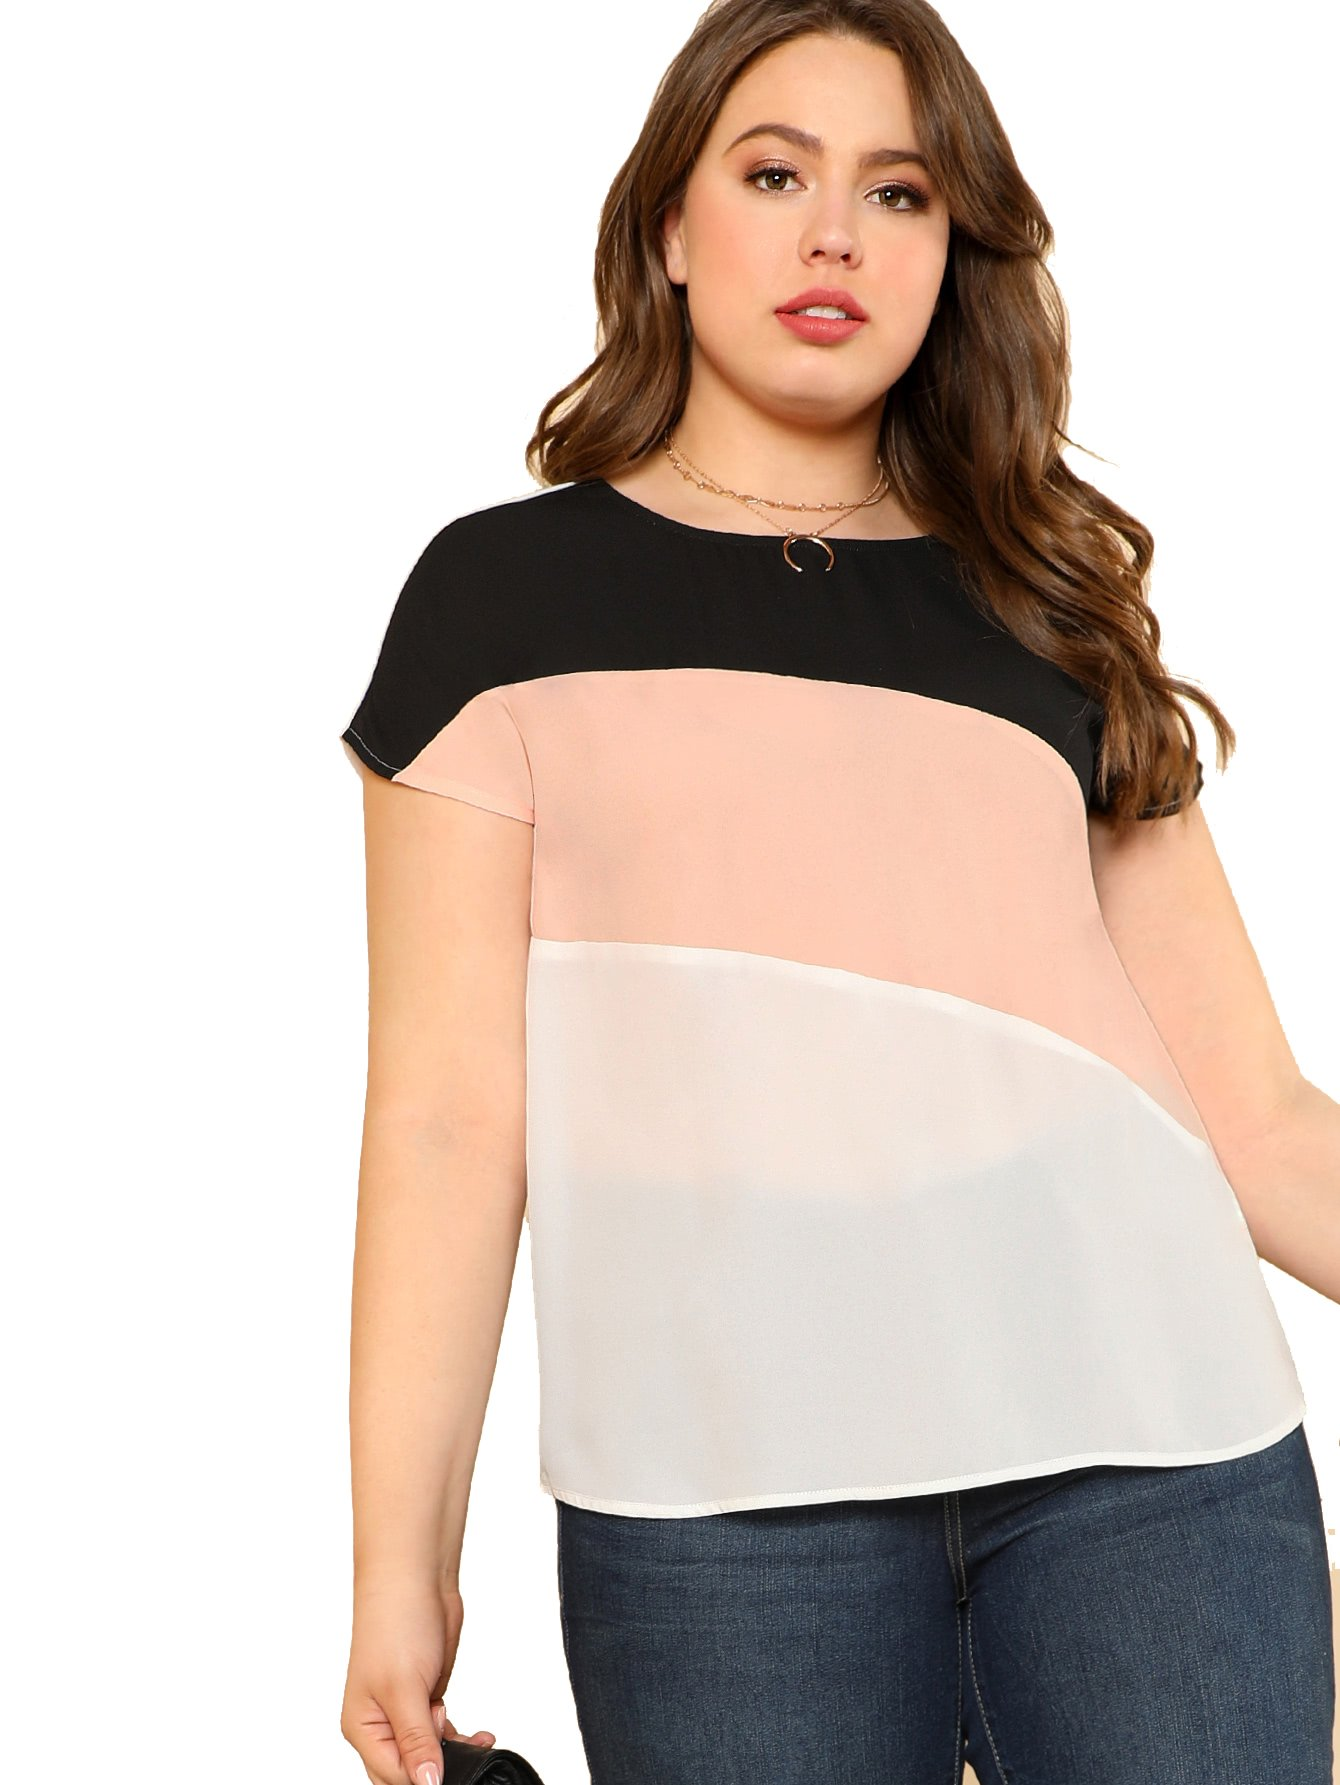 Romwe Women's Color Block Blouse Short Sleeve Casual Tee Shirts Tunic Tops Pink 0XL